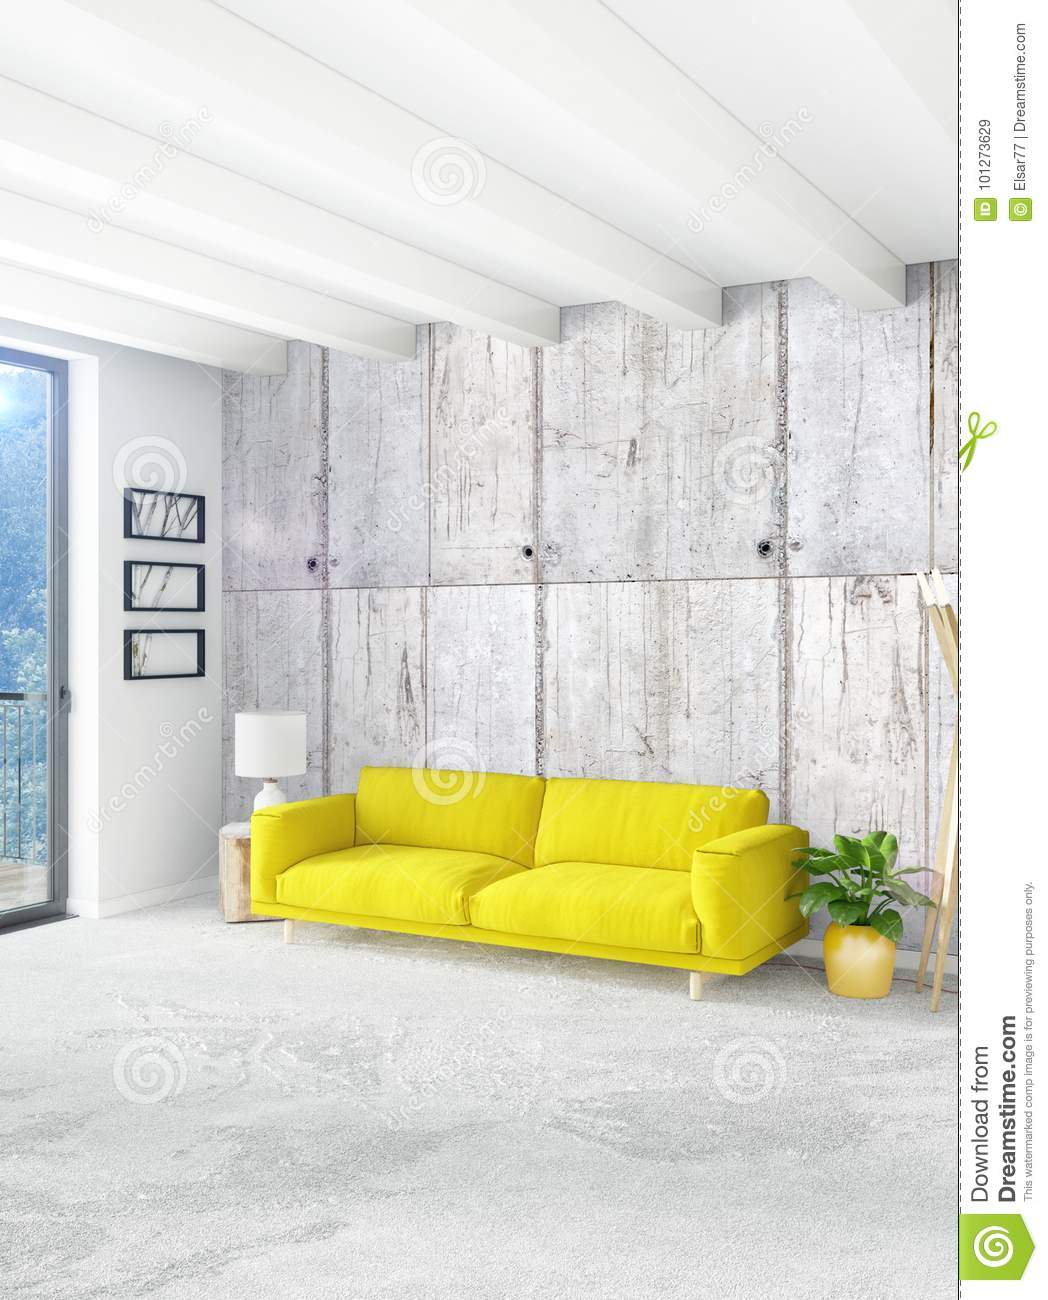 Stylish Furniture Yellow Bedroom Or Livingroom In Modern Style Interior Design With